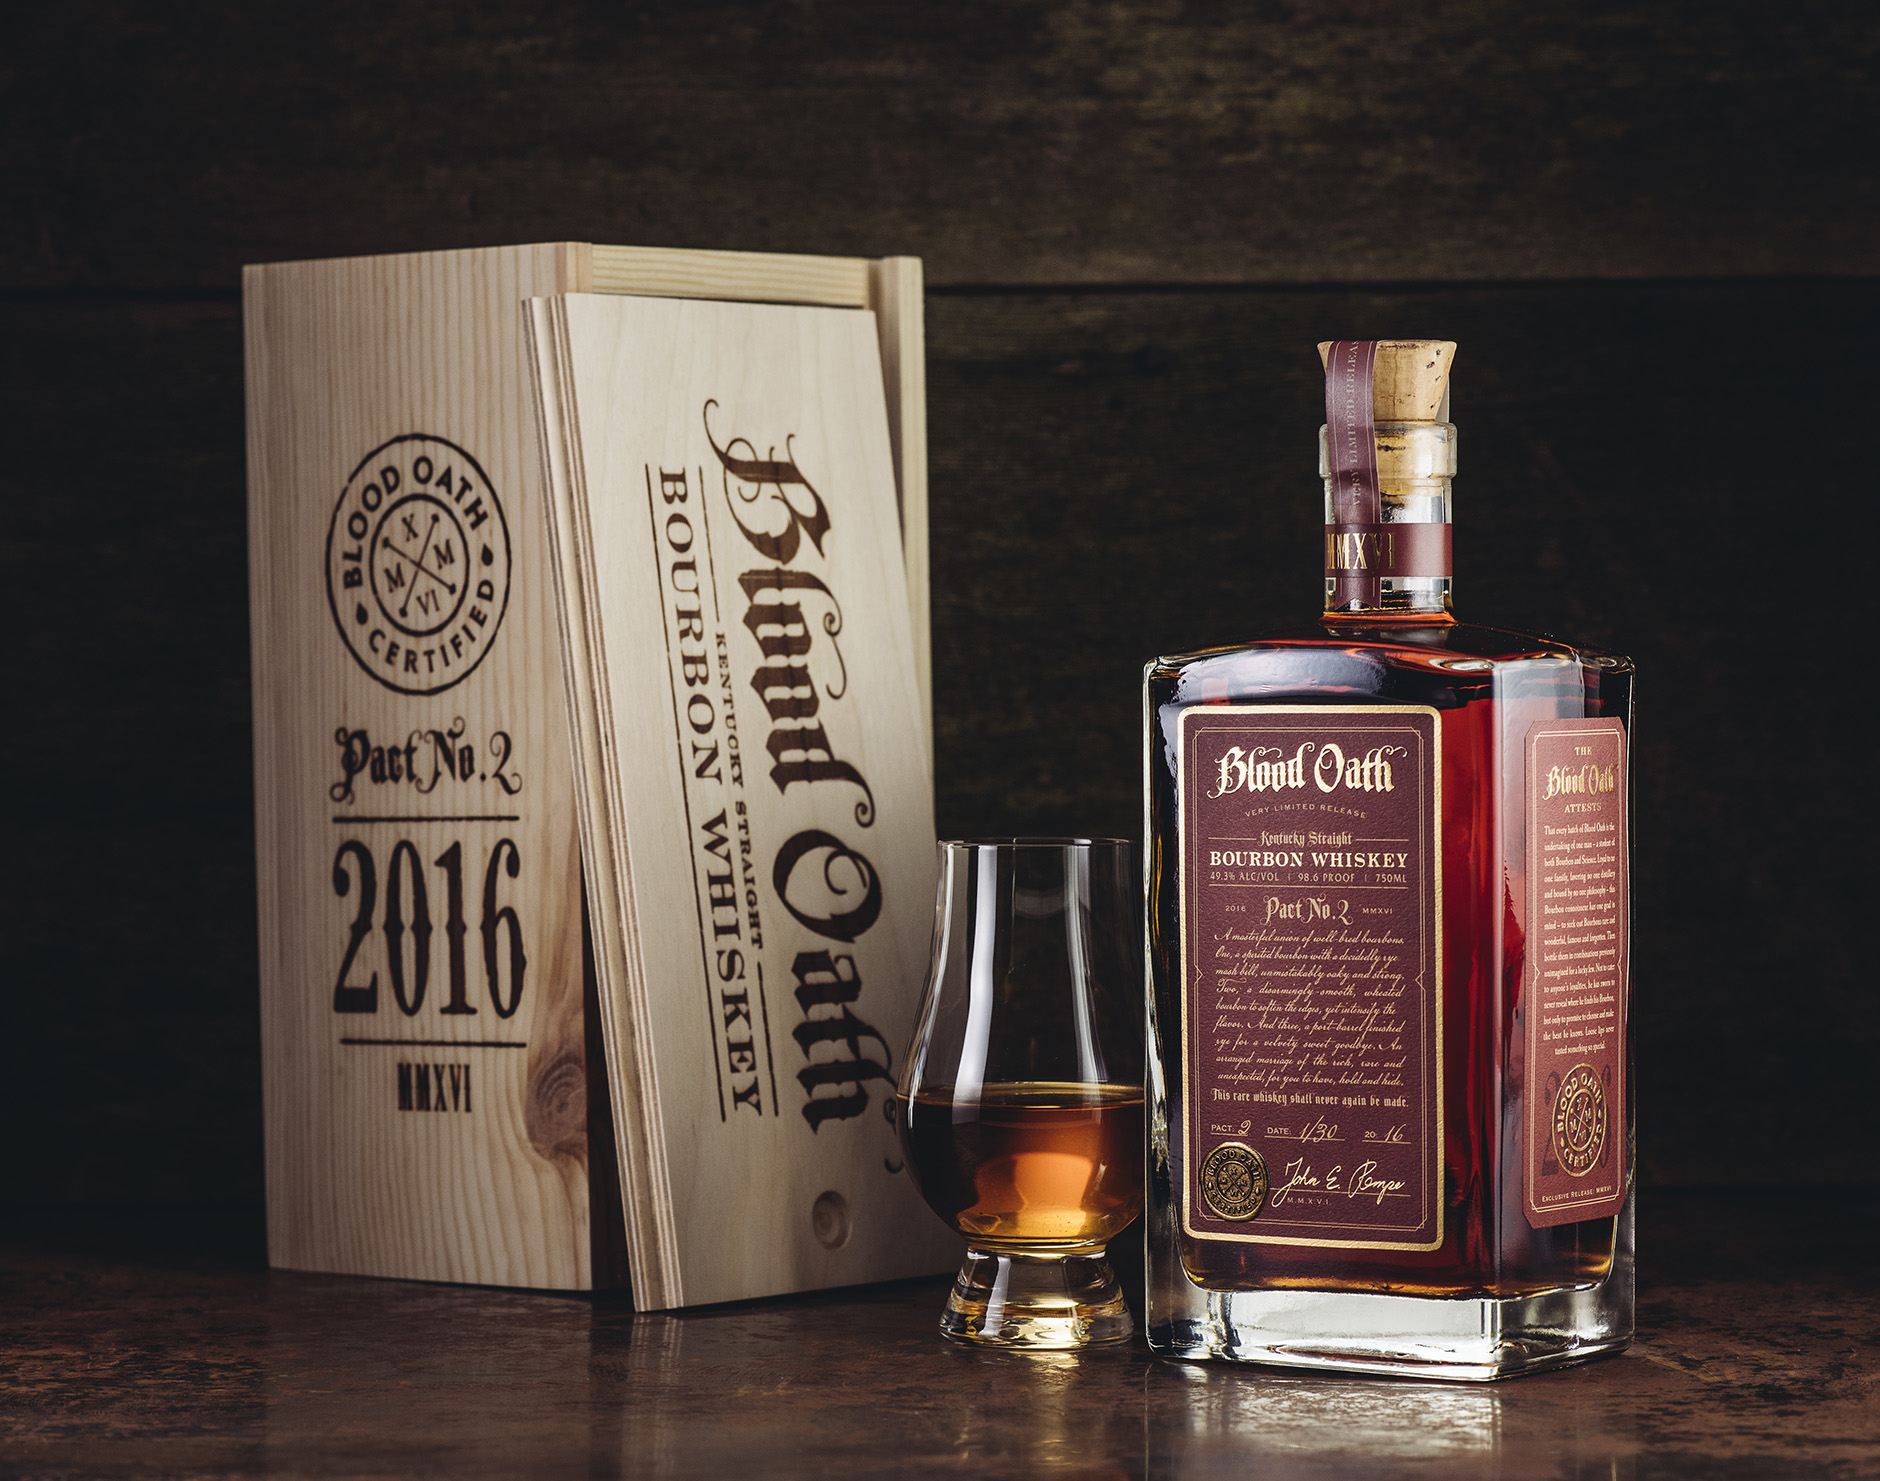 Blood Oath Bourbon Package Design